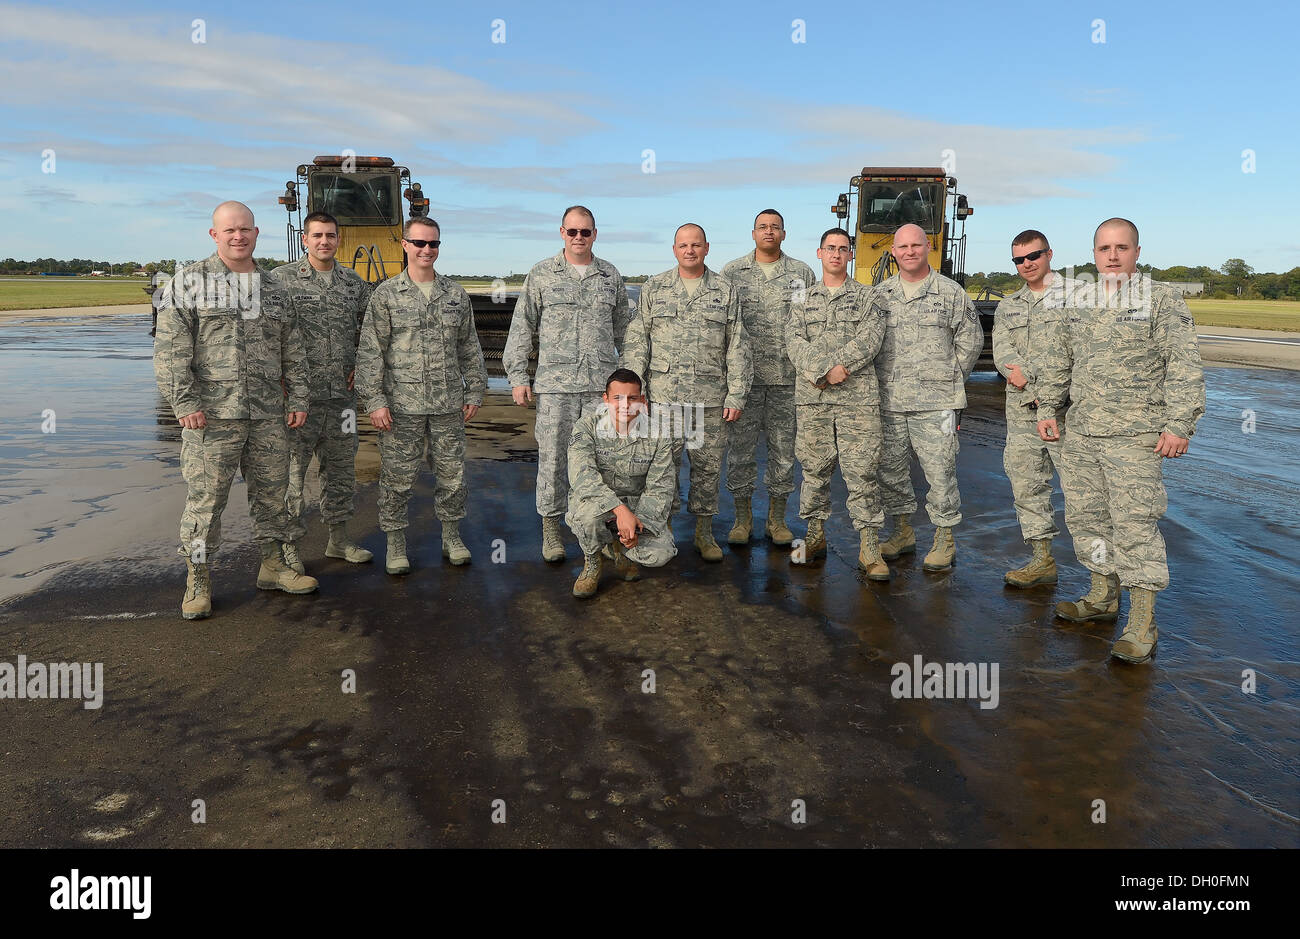 Senior leaders of the 436th Airlift Wing join with 436th Civil Engineer Squadron, pavement and heavy equipment operators section, to better understand how the CE team accomplishes the task of rubber removel at Dover Air Force Base, Del. on Oct. 15, 2013. - Stock Image